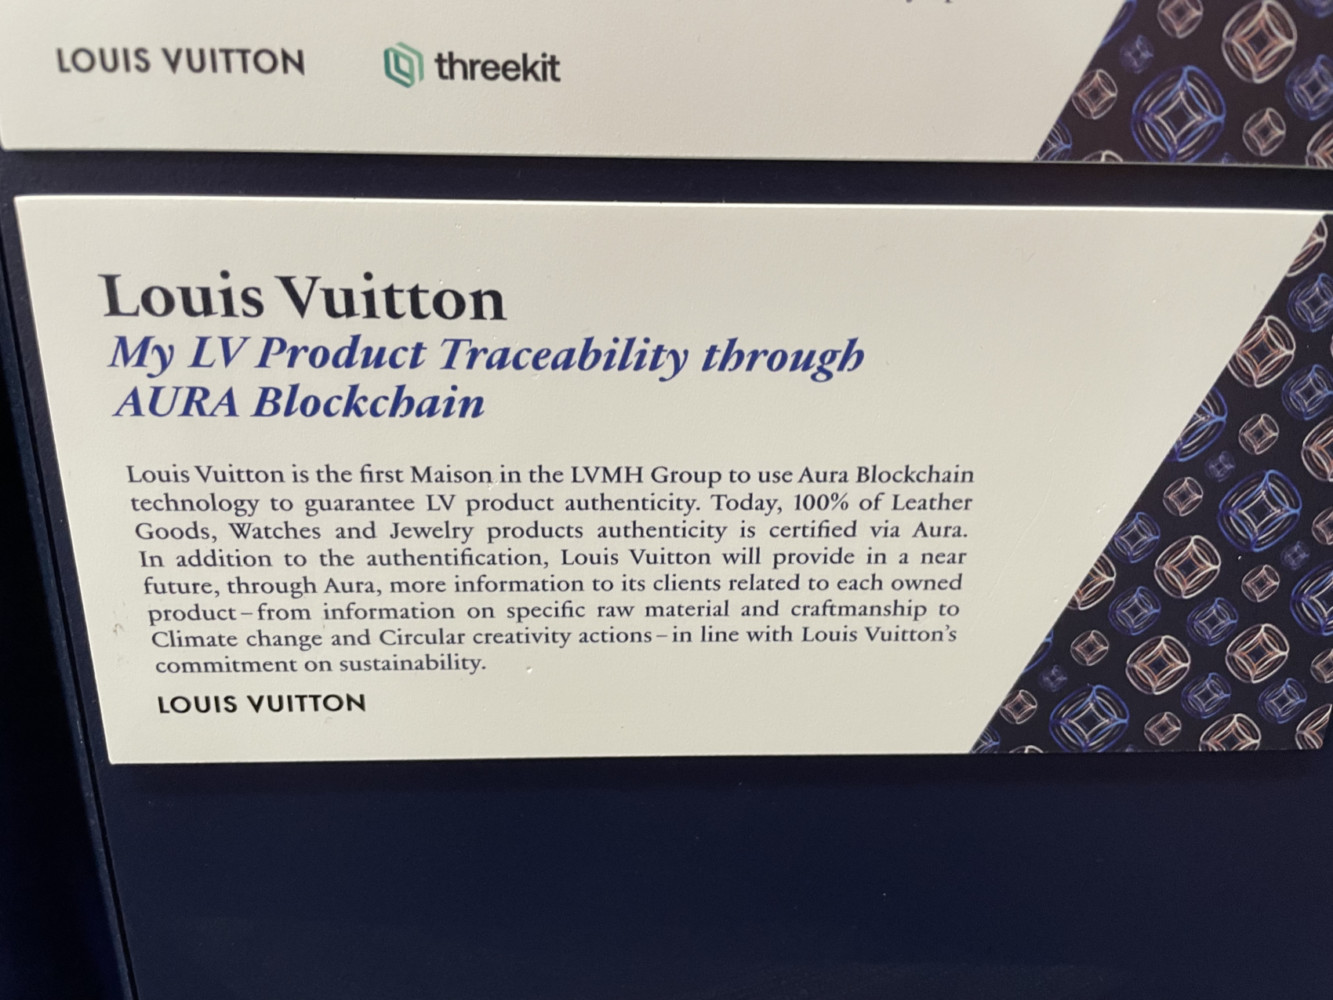 Louis Vuitton on LVMH stand - Vivatech 2021- tracability, blockchain, RFID- Lab Luxury and Retail